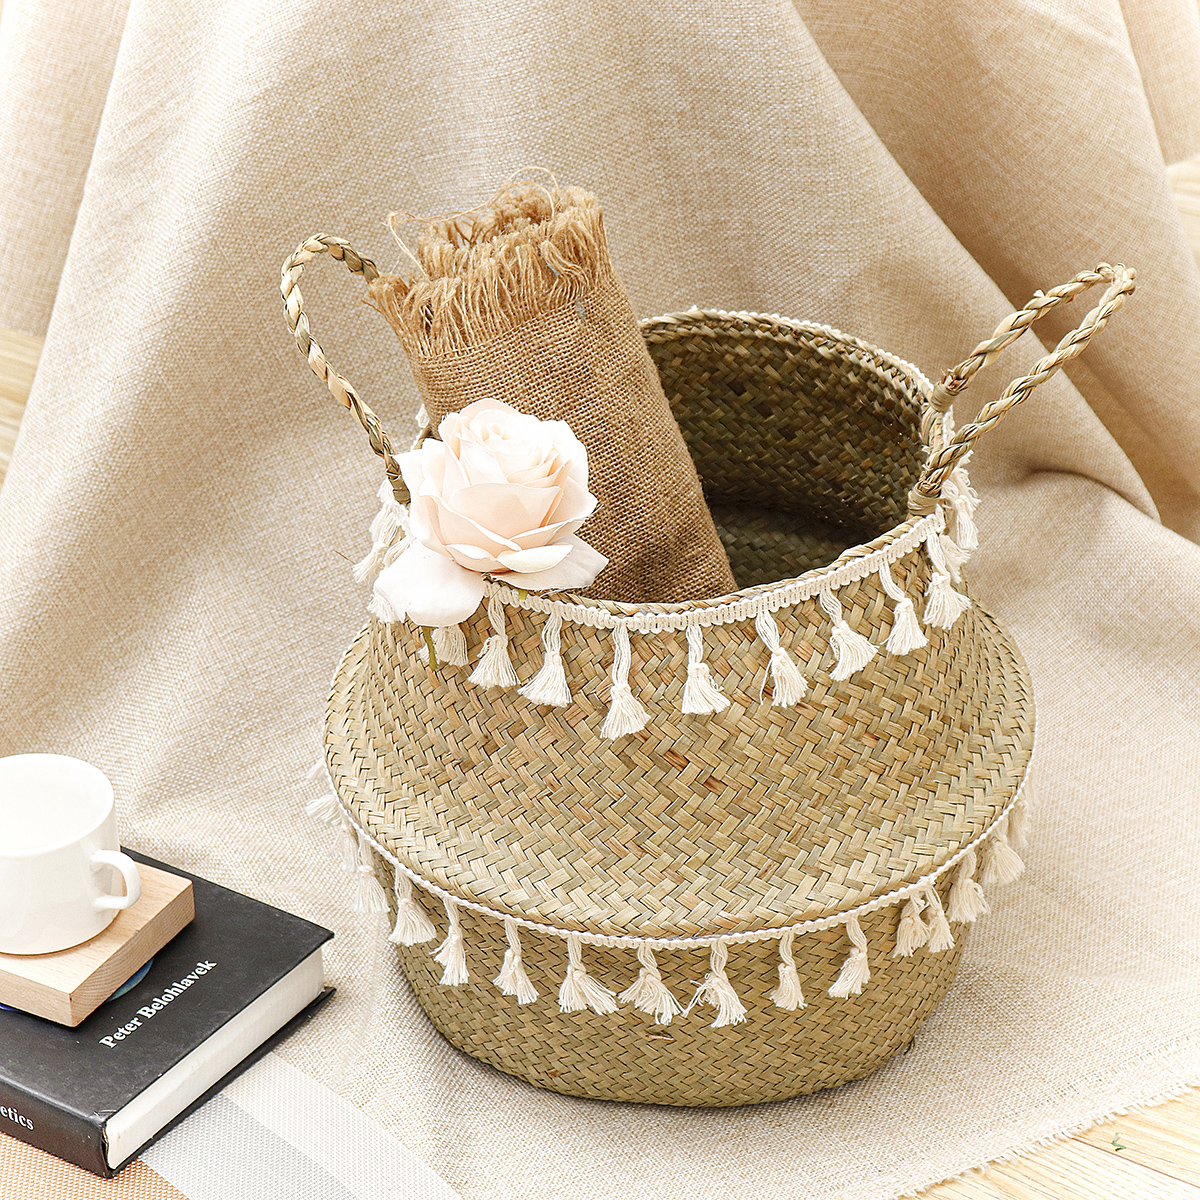 2020 Wicker Basket Seagrass Woven Storage Basket Plant Wicker Hanging Baskets Garden Flower Vase Potted Foldable Pot With Handle